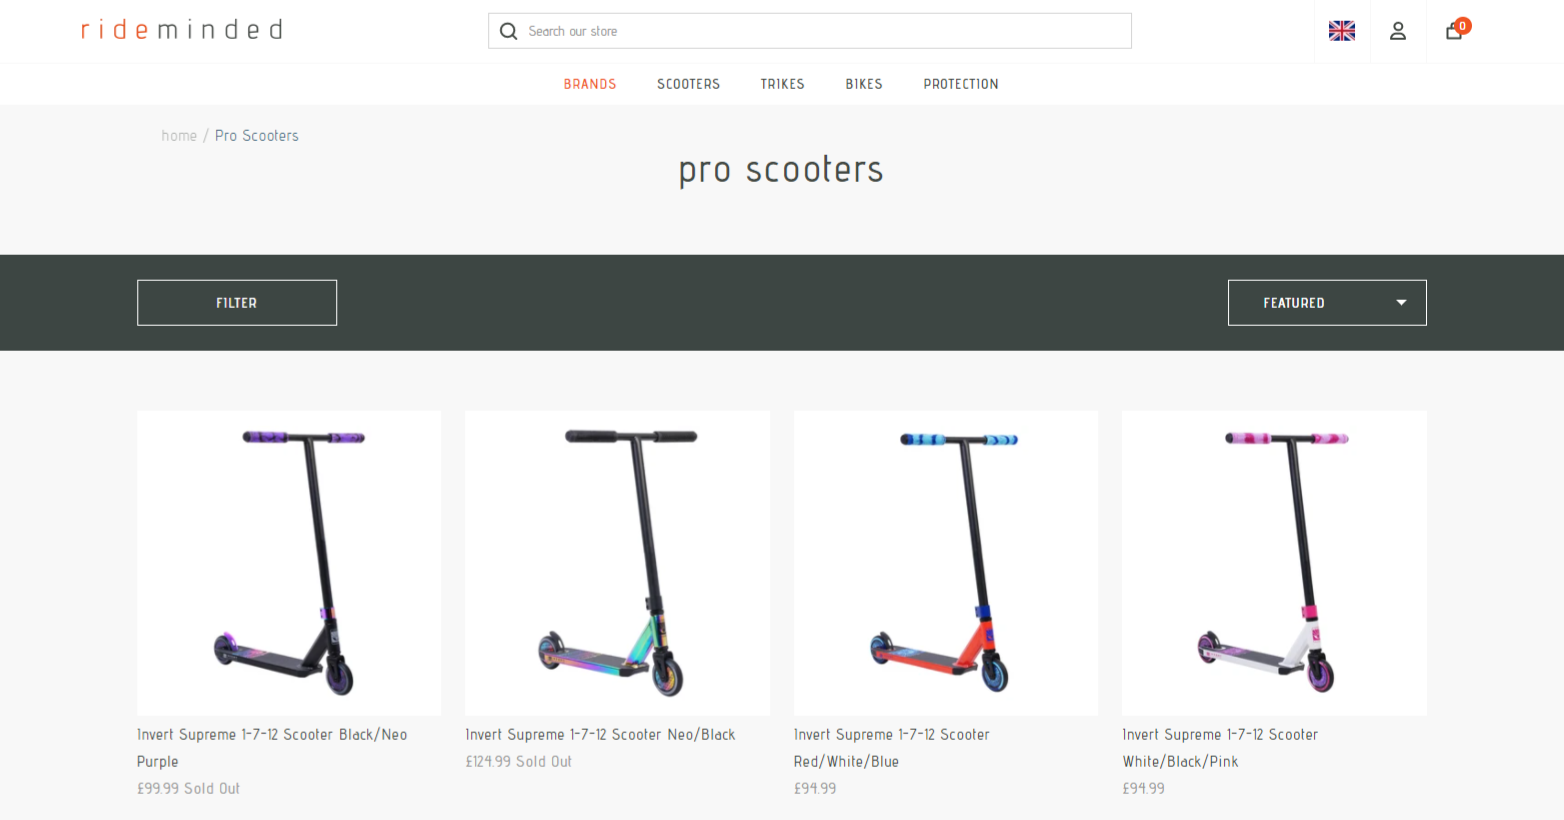 Pro scooters for sale on Rideminded website